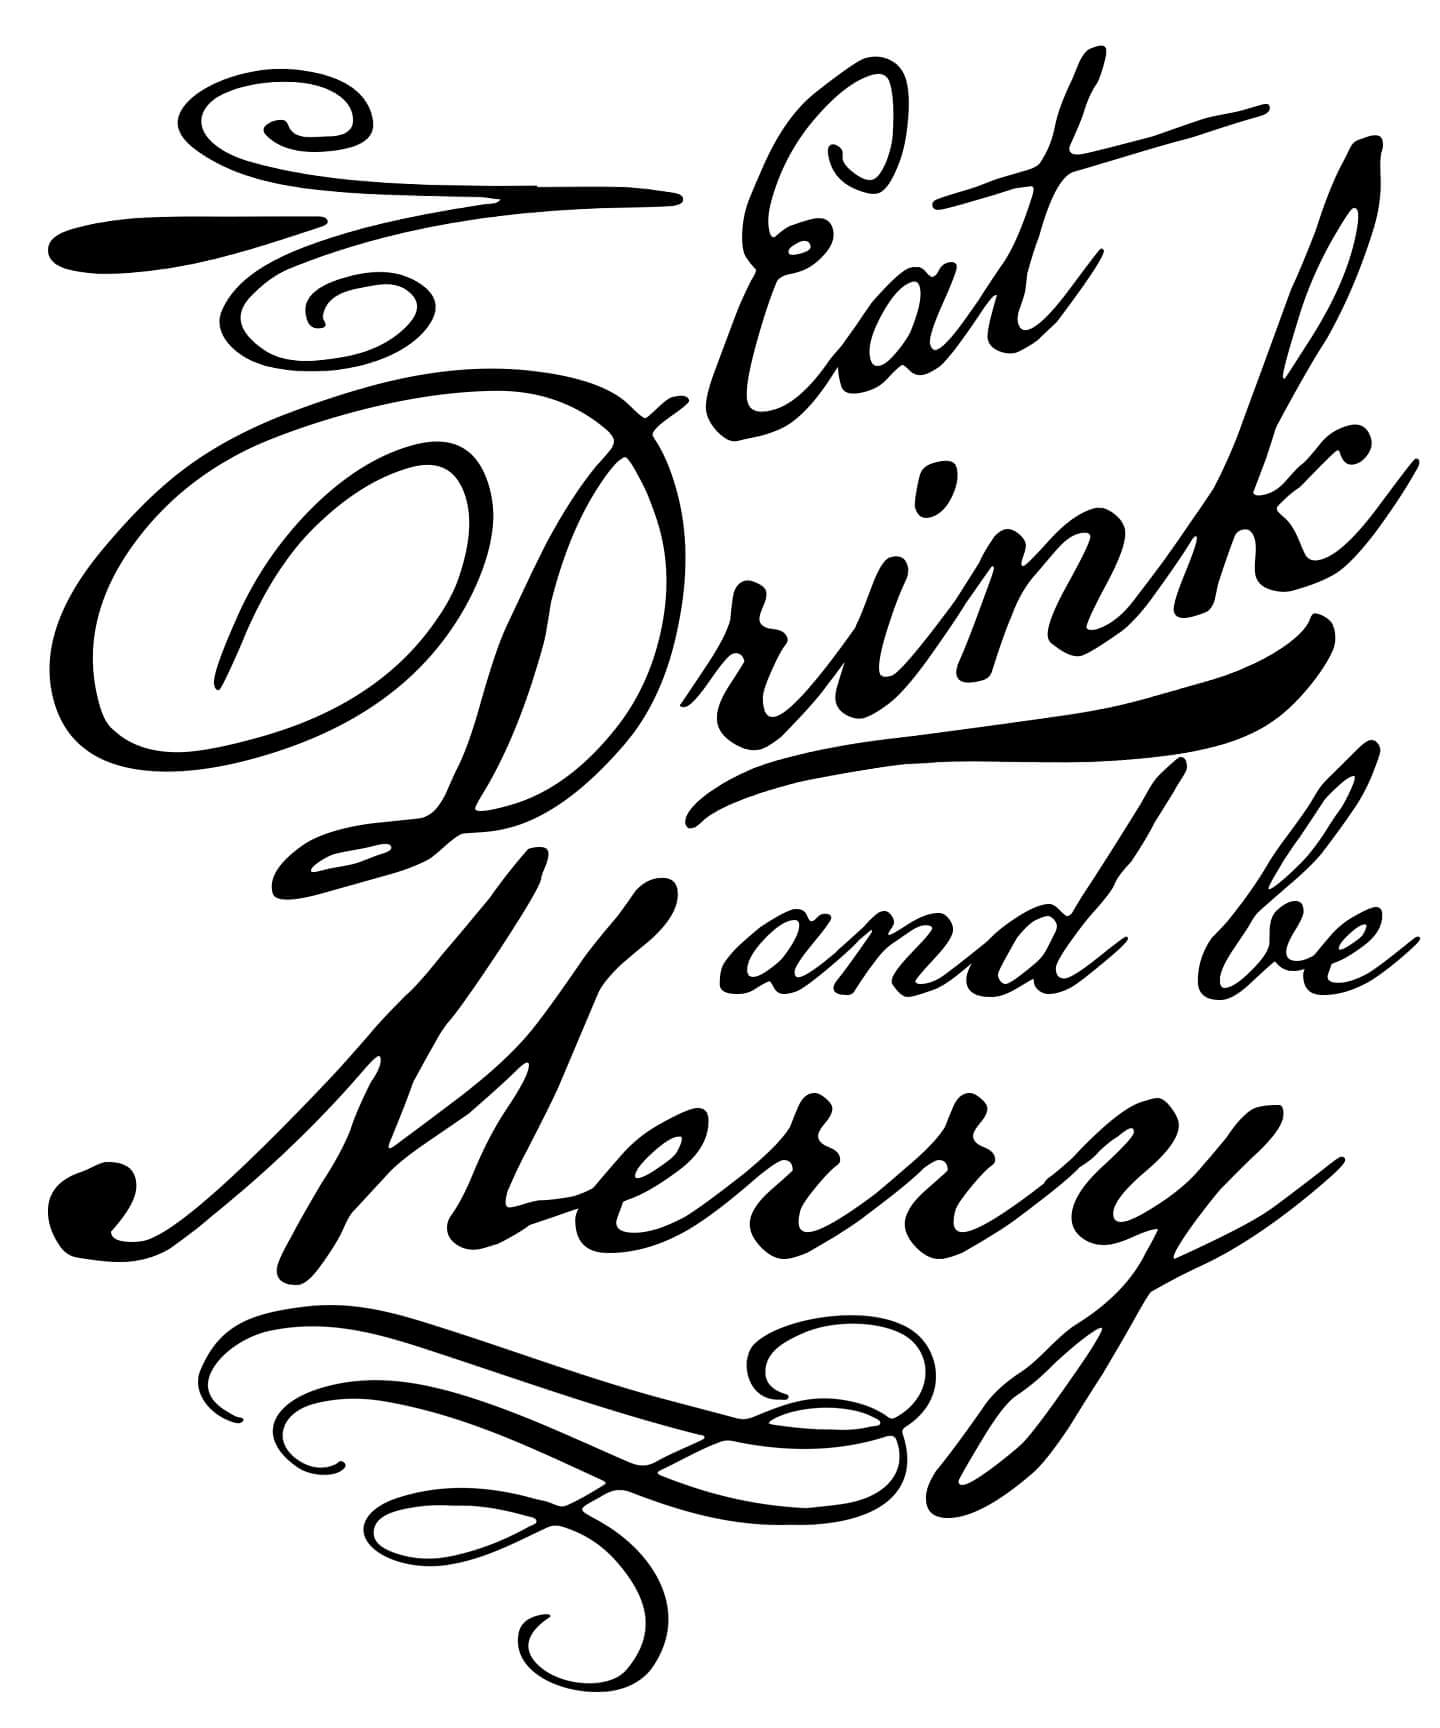 Free Eat, Drink and be Merry SVG File